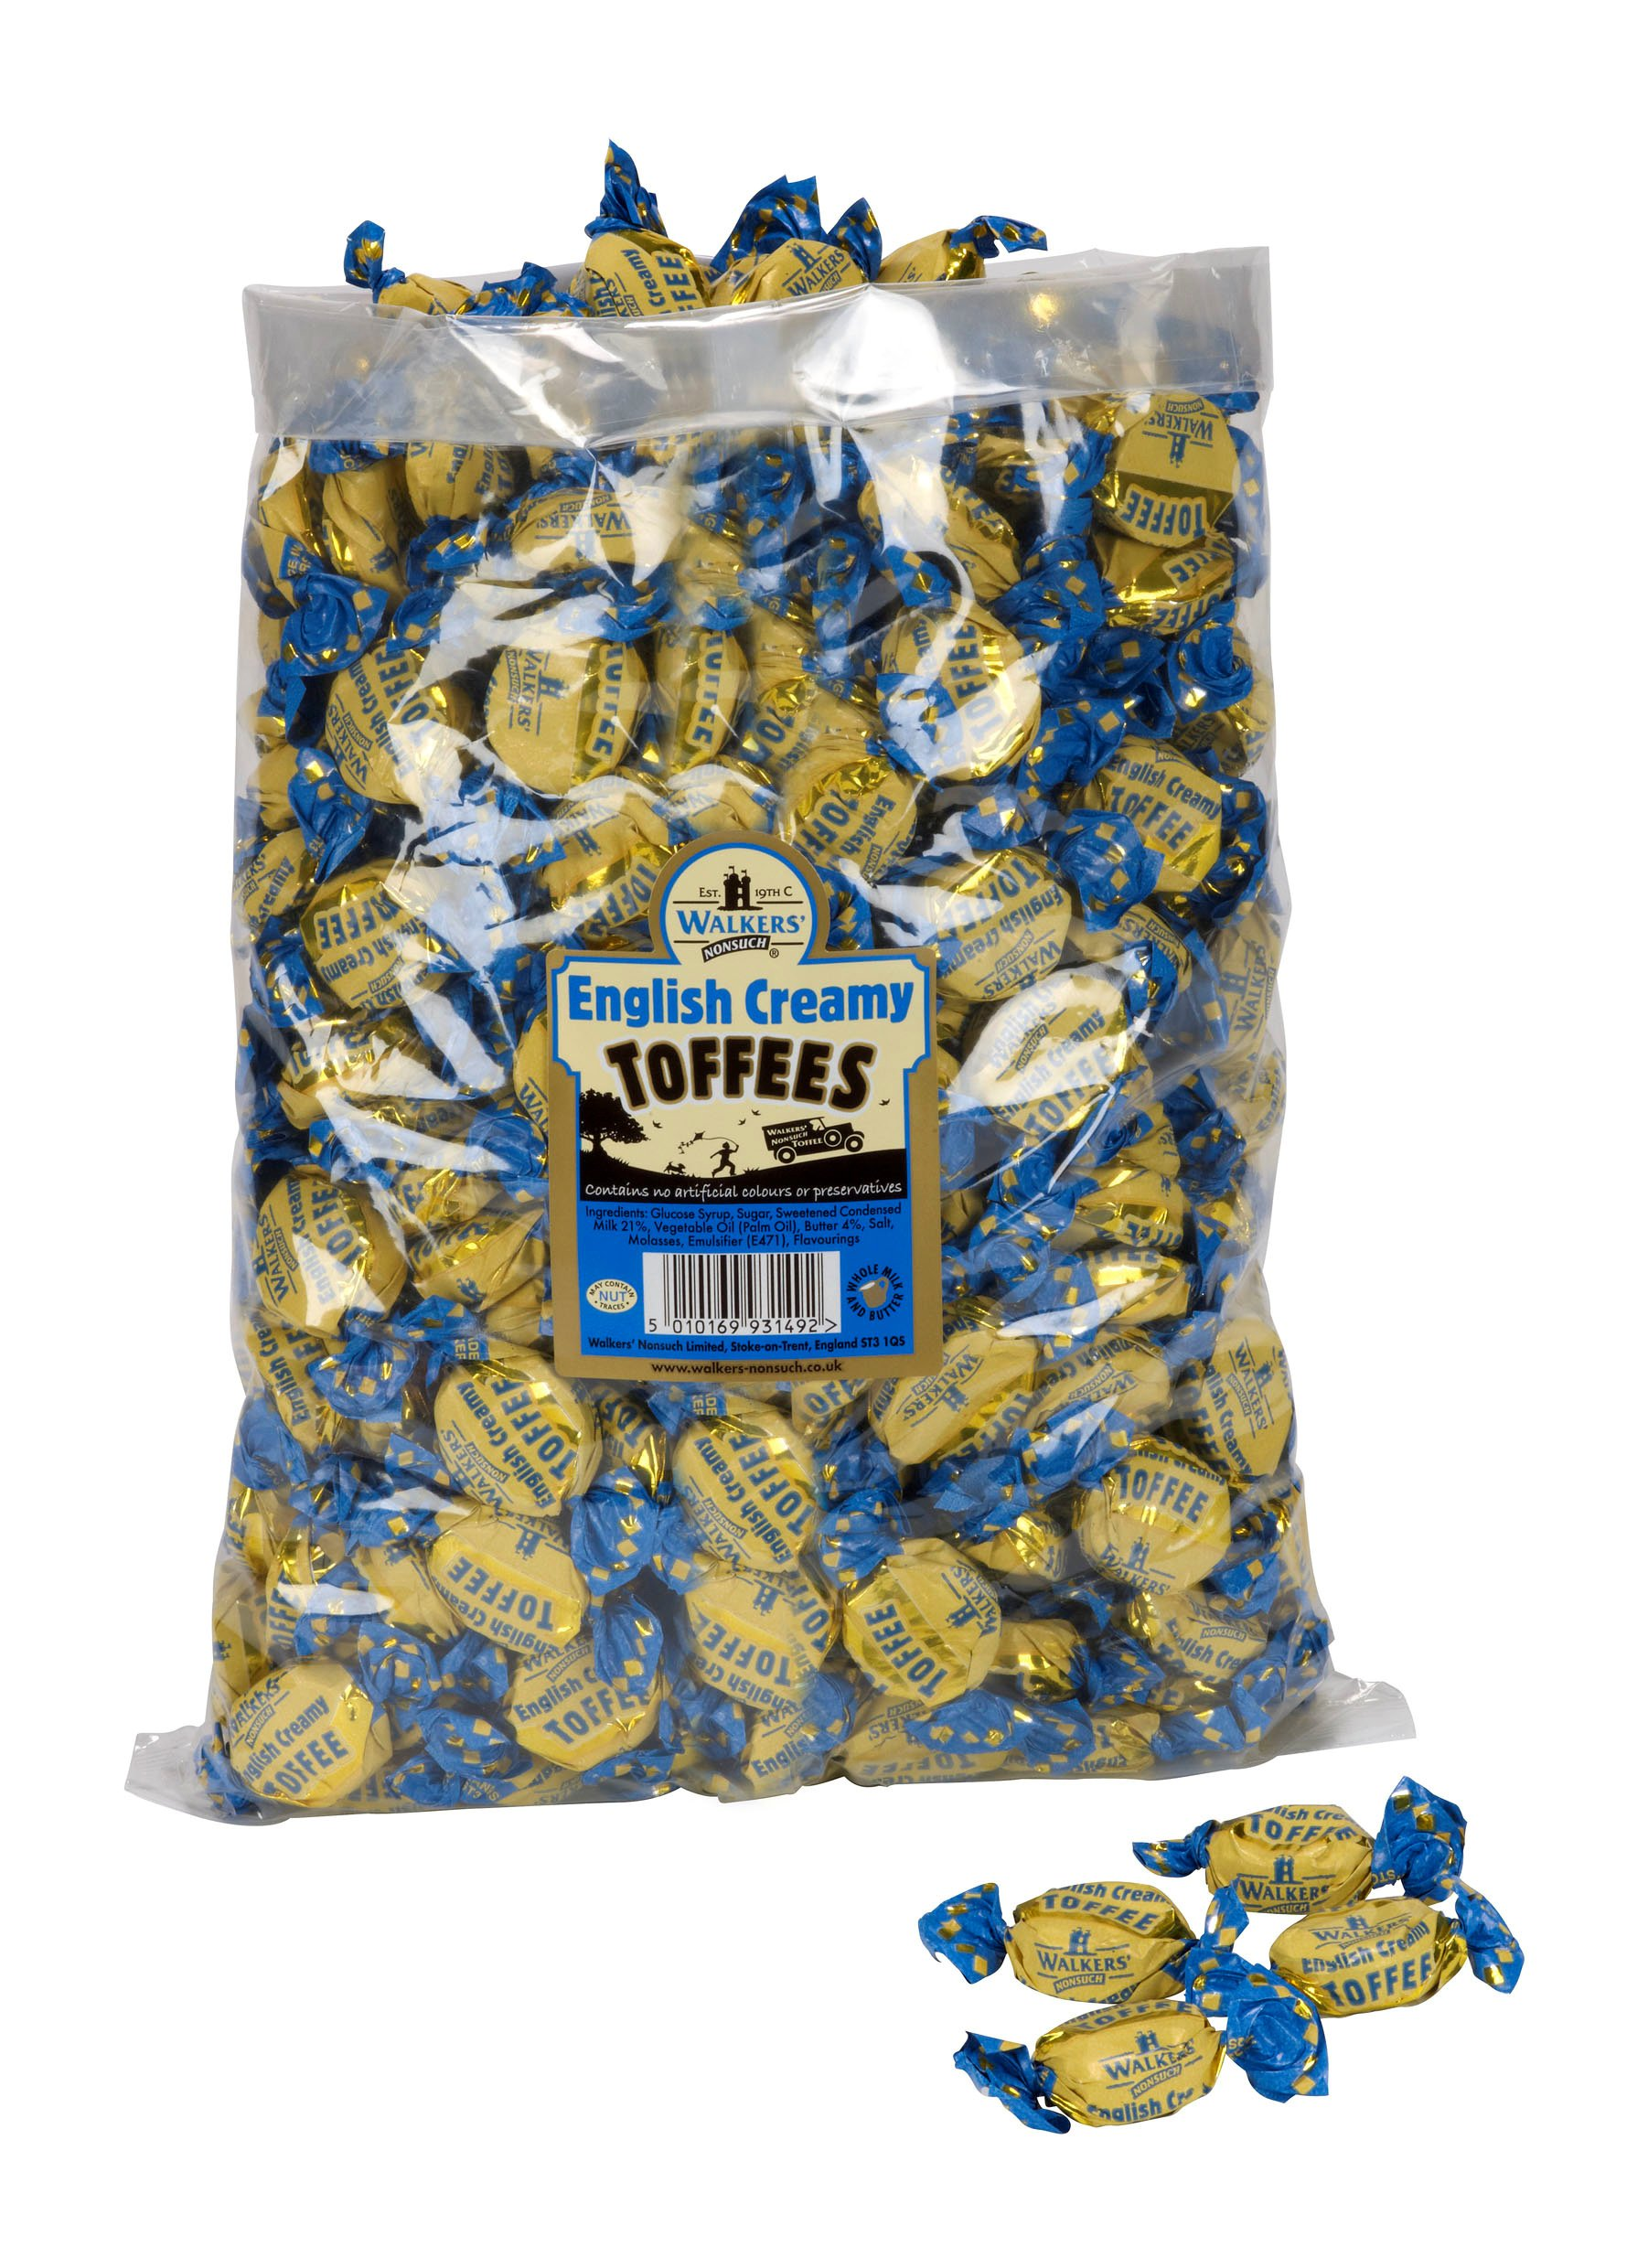 Walkers English Creamy Toffees, 5.5 Pound Bag by Walkers